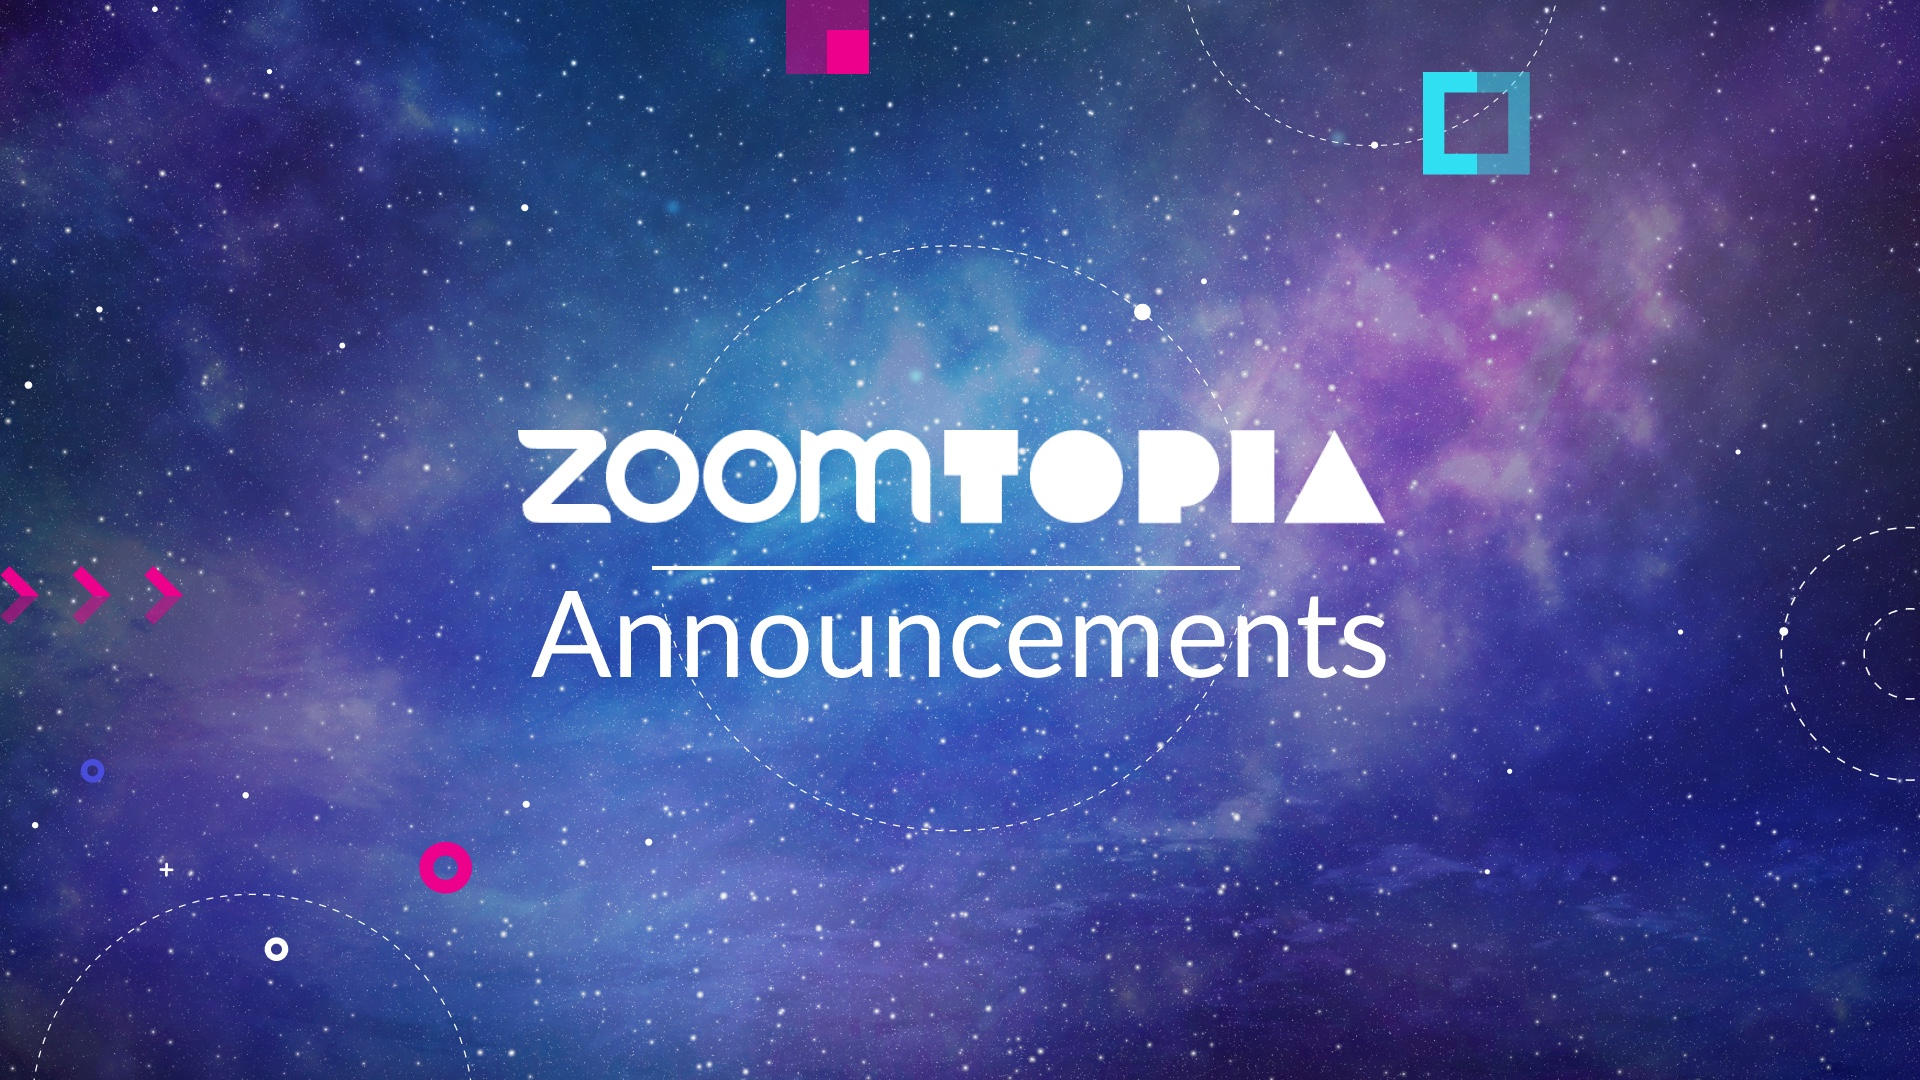 Zoomtopia 2019 Showcases Expanded Unified Communications Platform